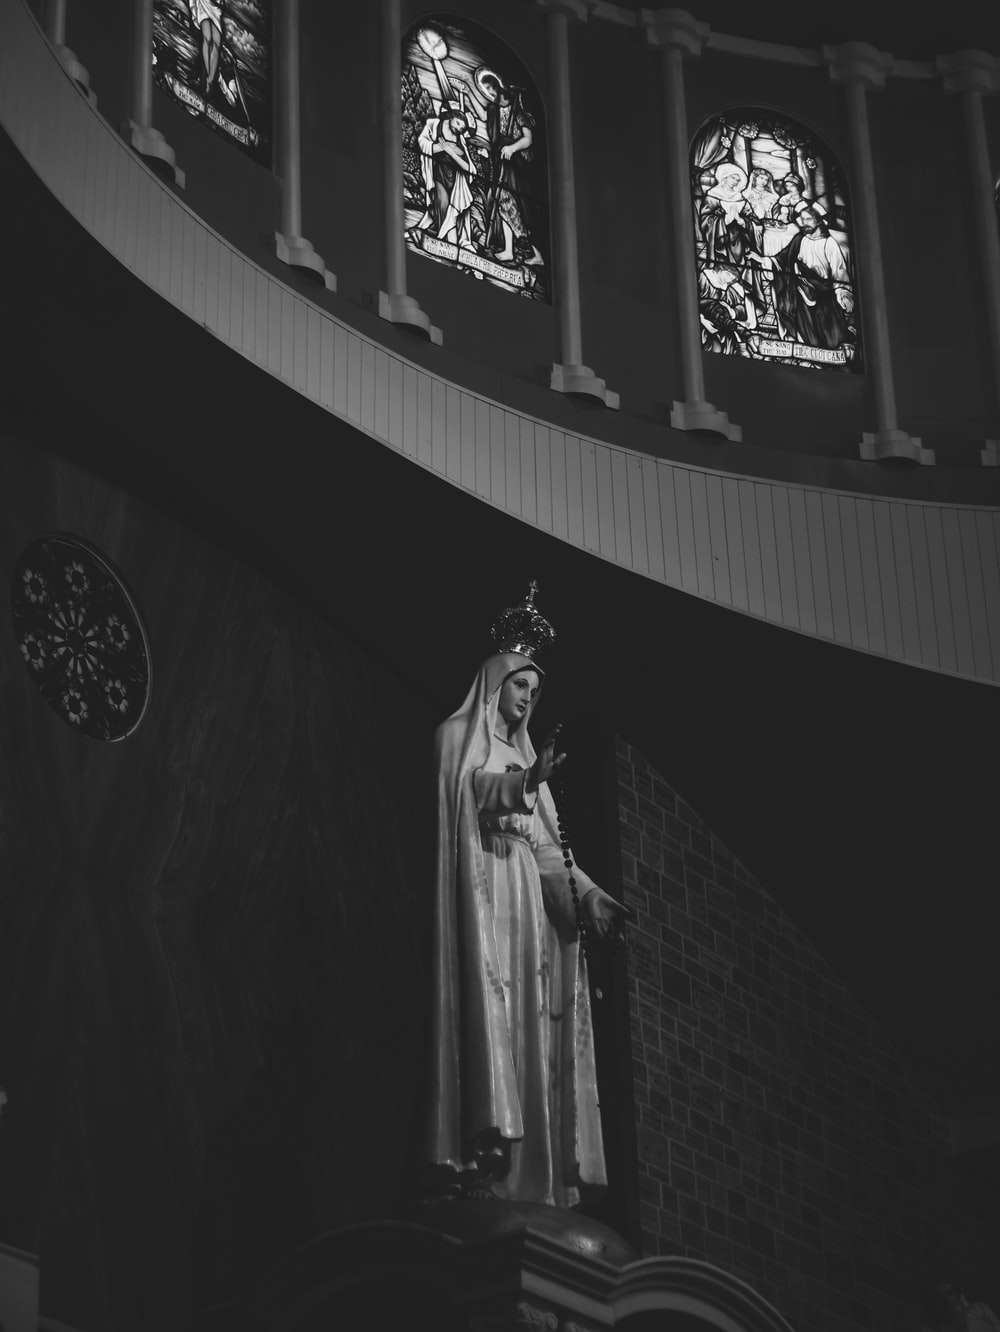 grayscale photo of woman in dress statue